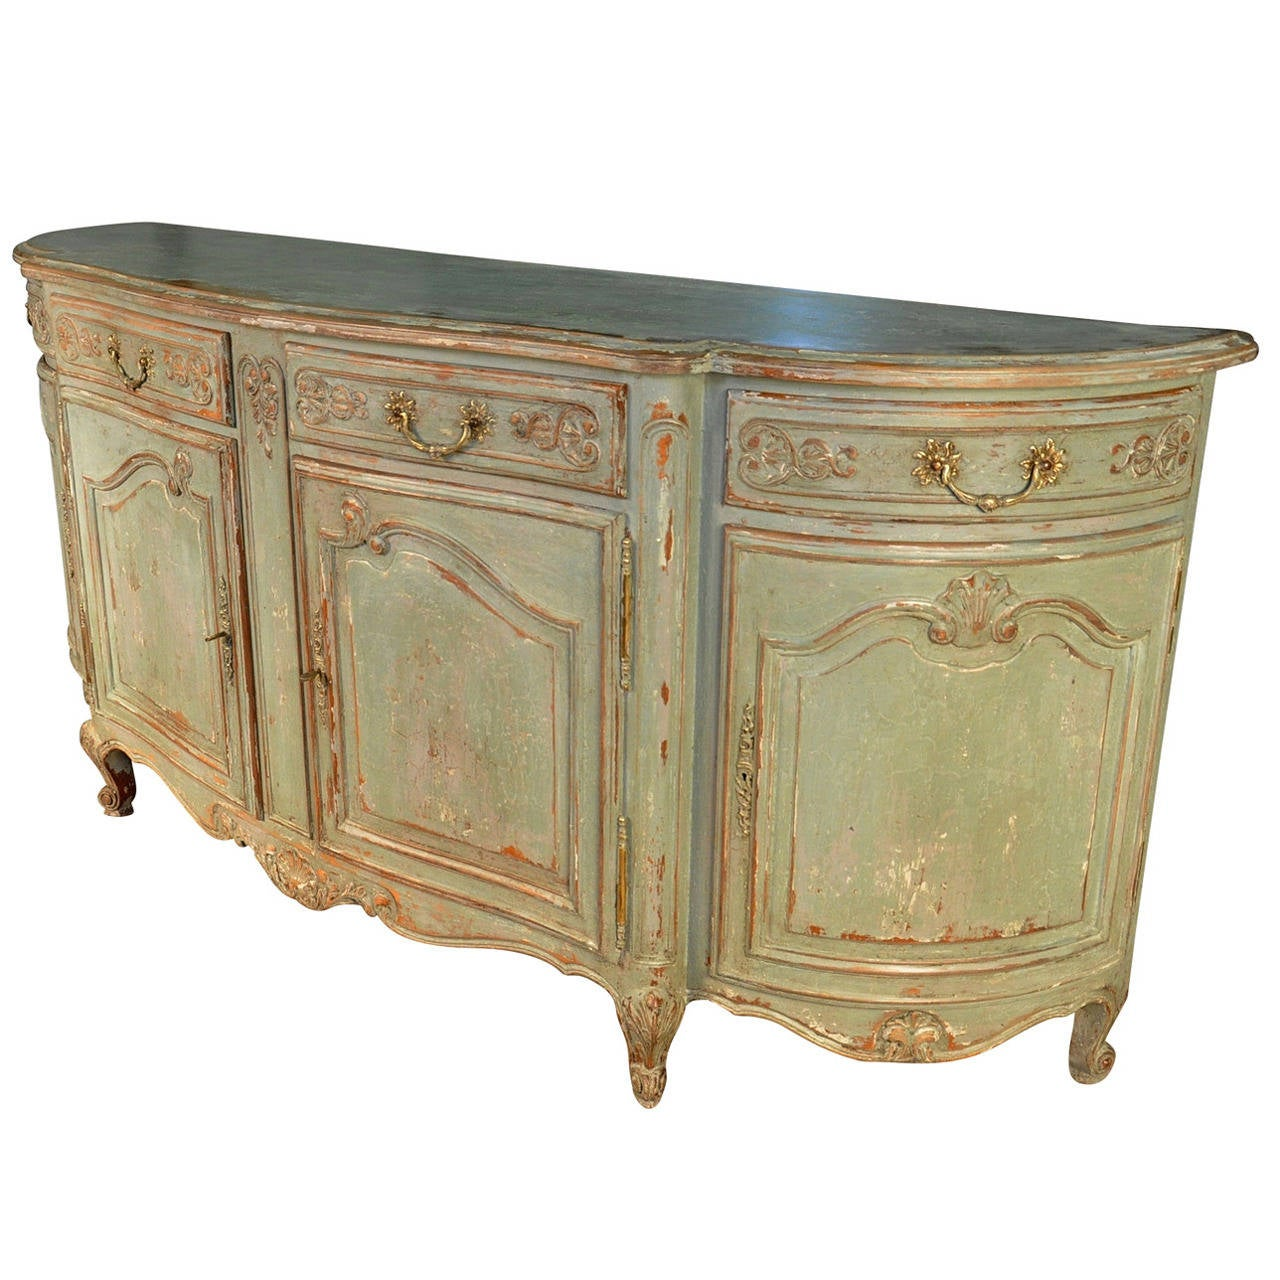 Buffet enfilade but monumental th century spanish for Buffet enfilade but